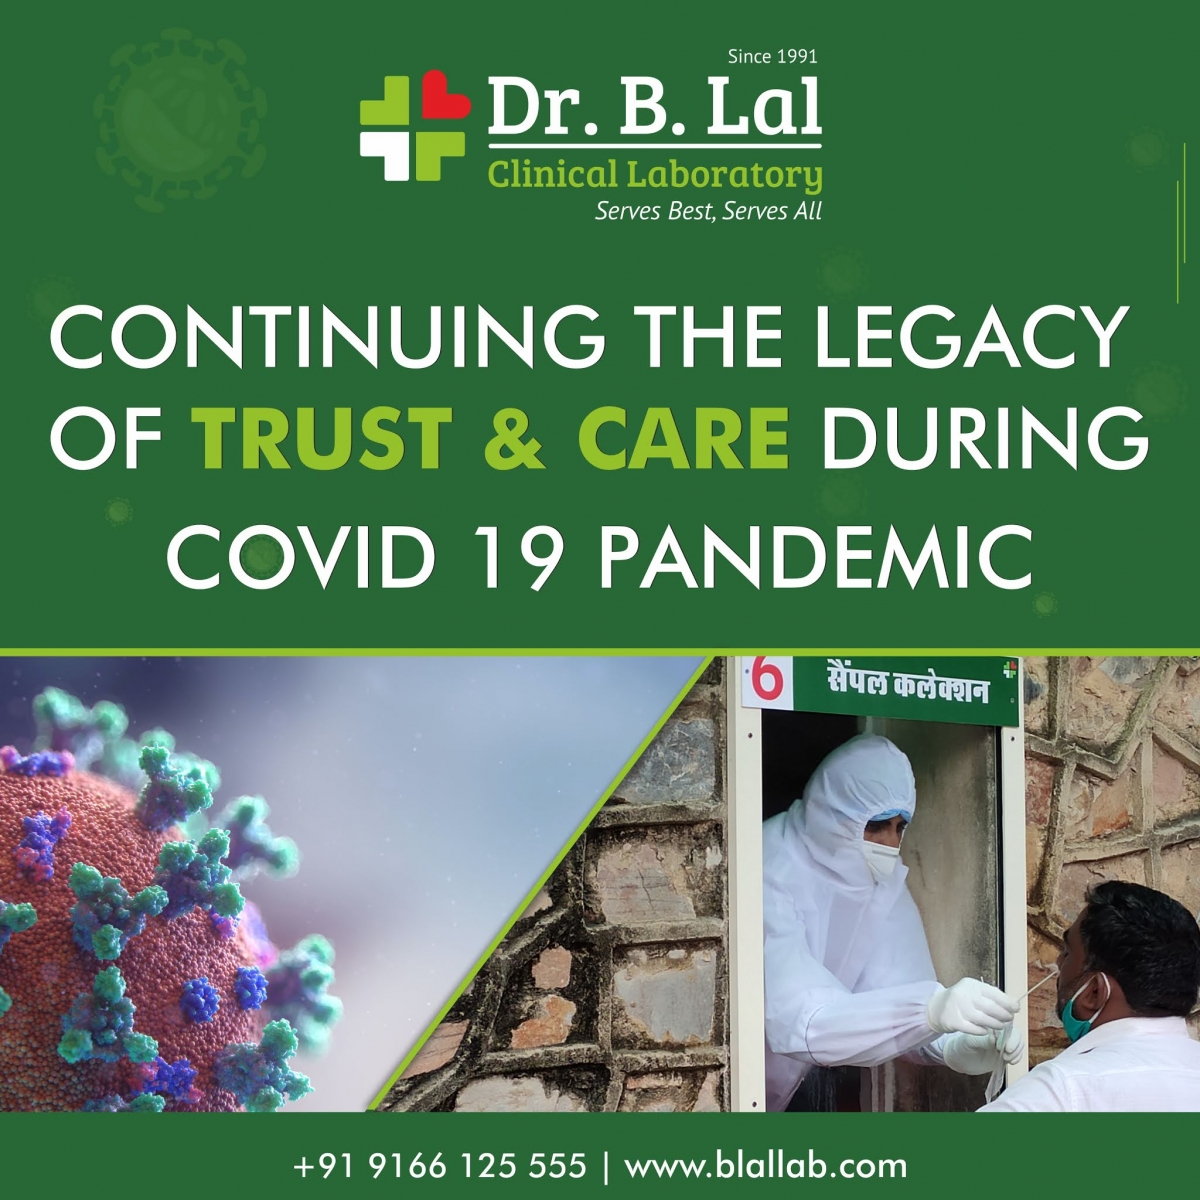 Our Covid-19 Journey   Dr. B. Lal Clinical Laboratory